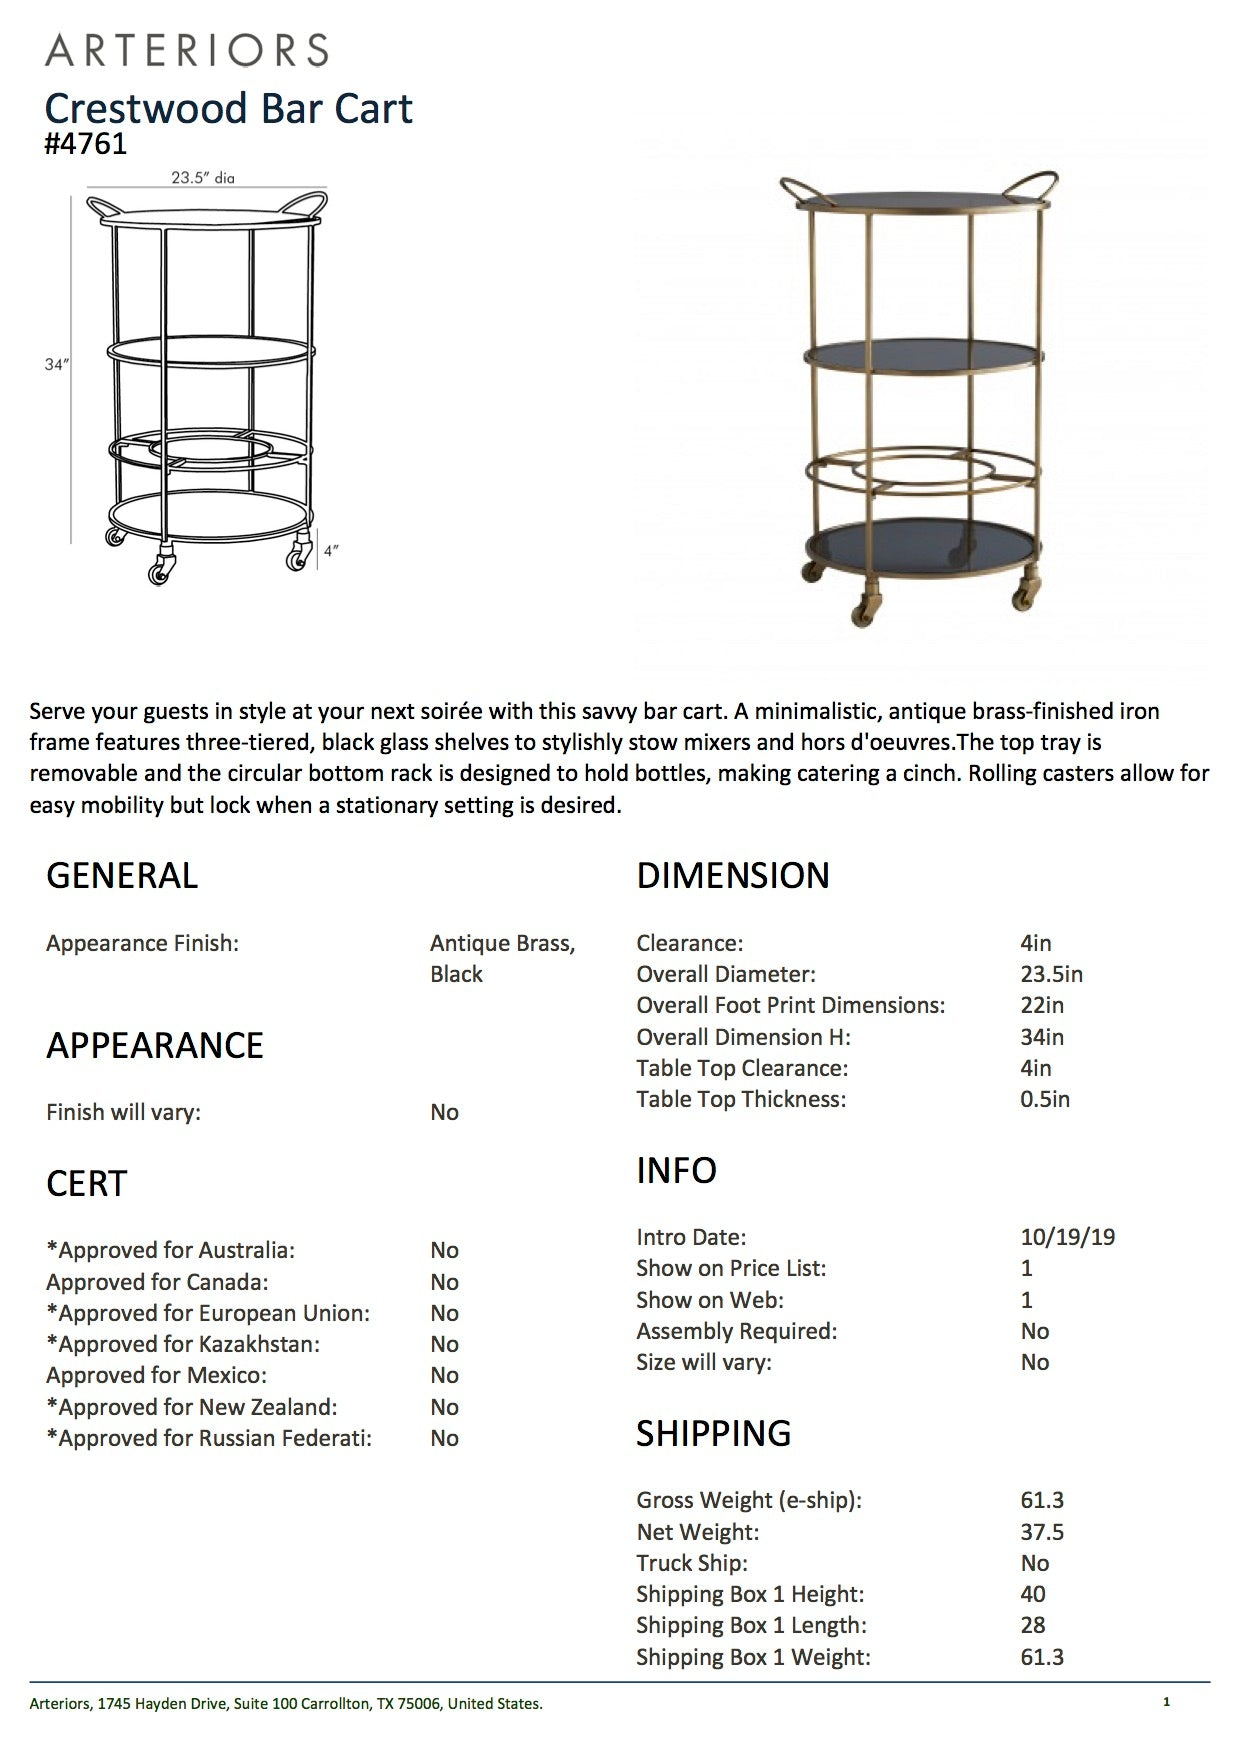 arteriors home crestwood bar cart tearsheet